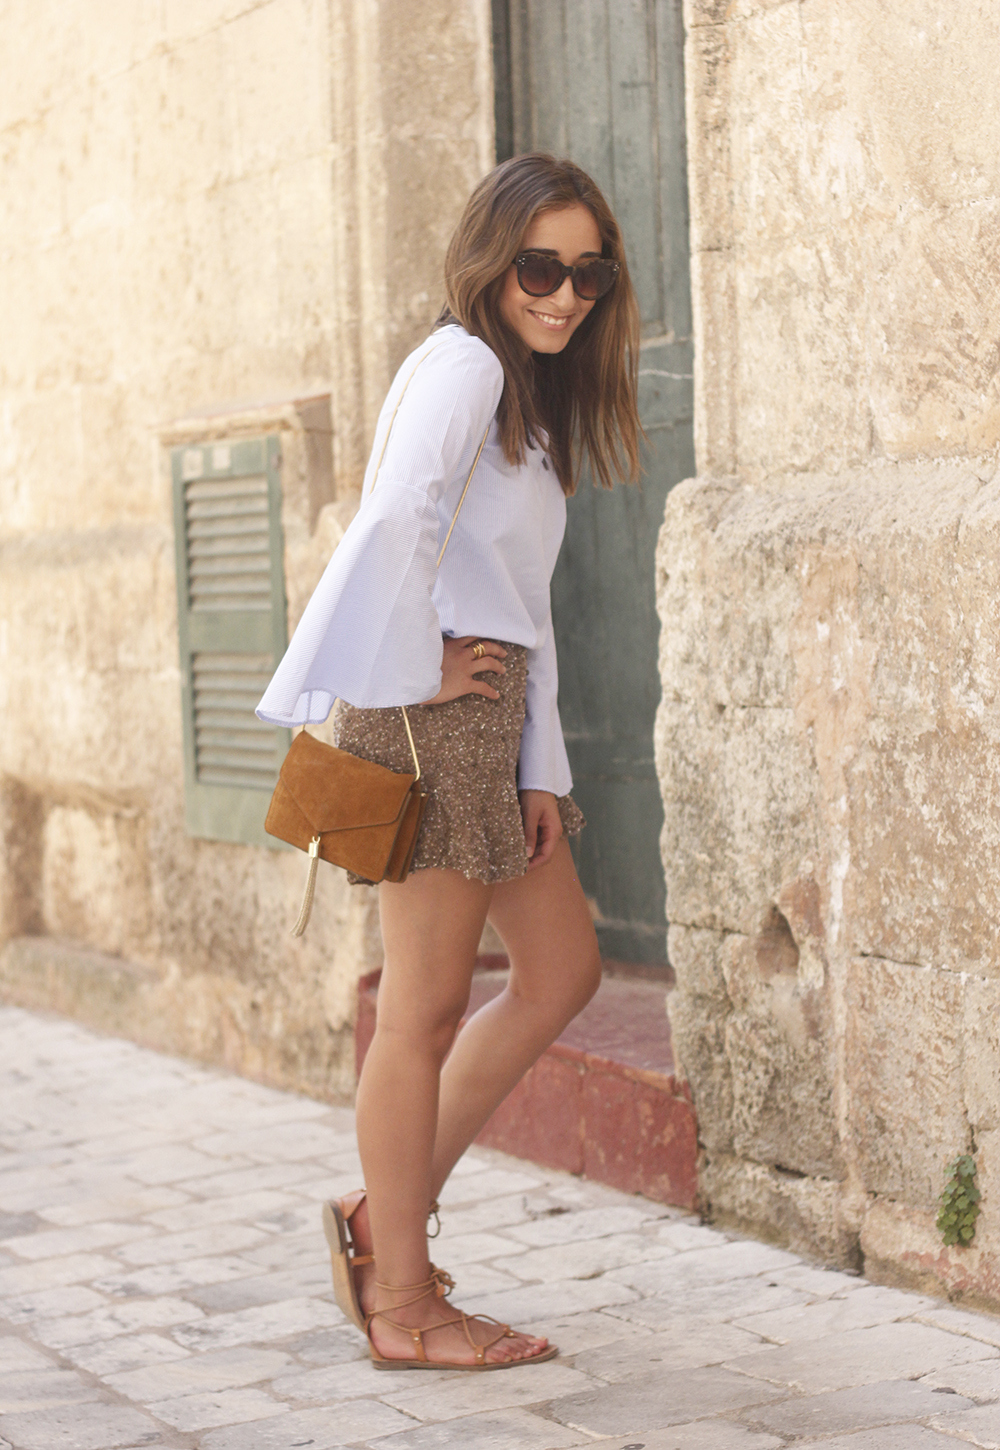 sequined shorts bell sleeves striped shirt summer flat sandals summer fashion outfit25